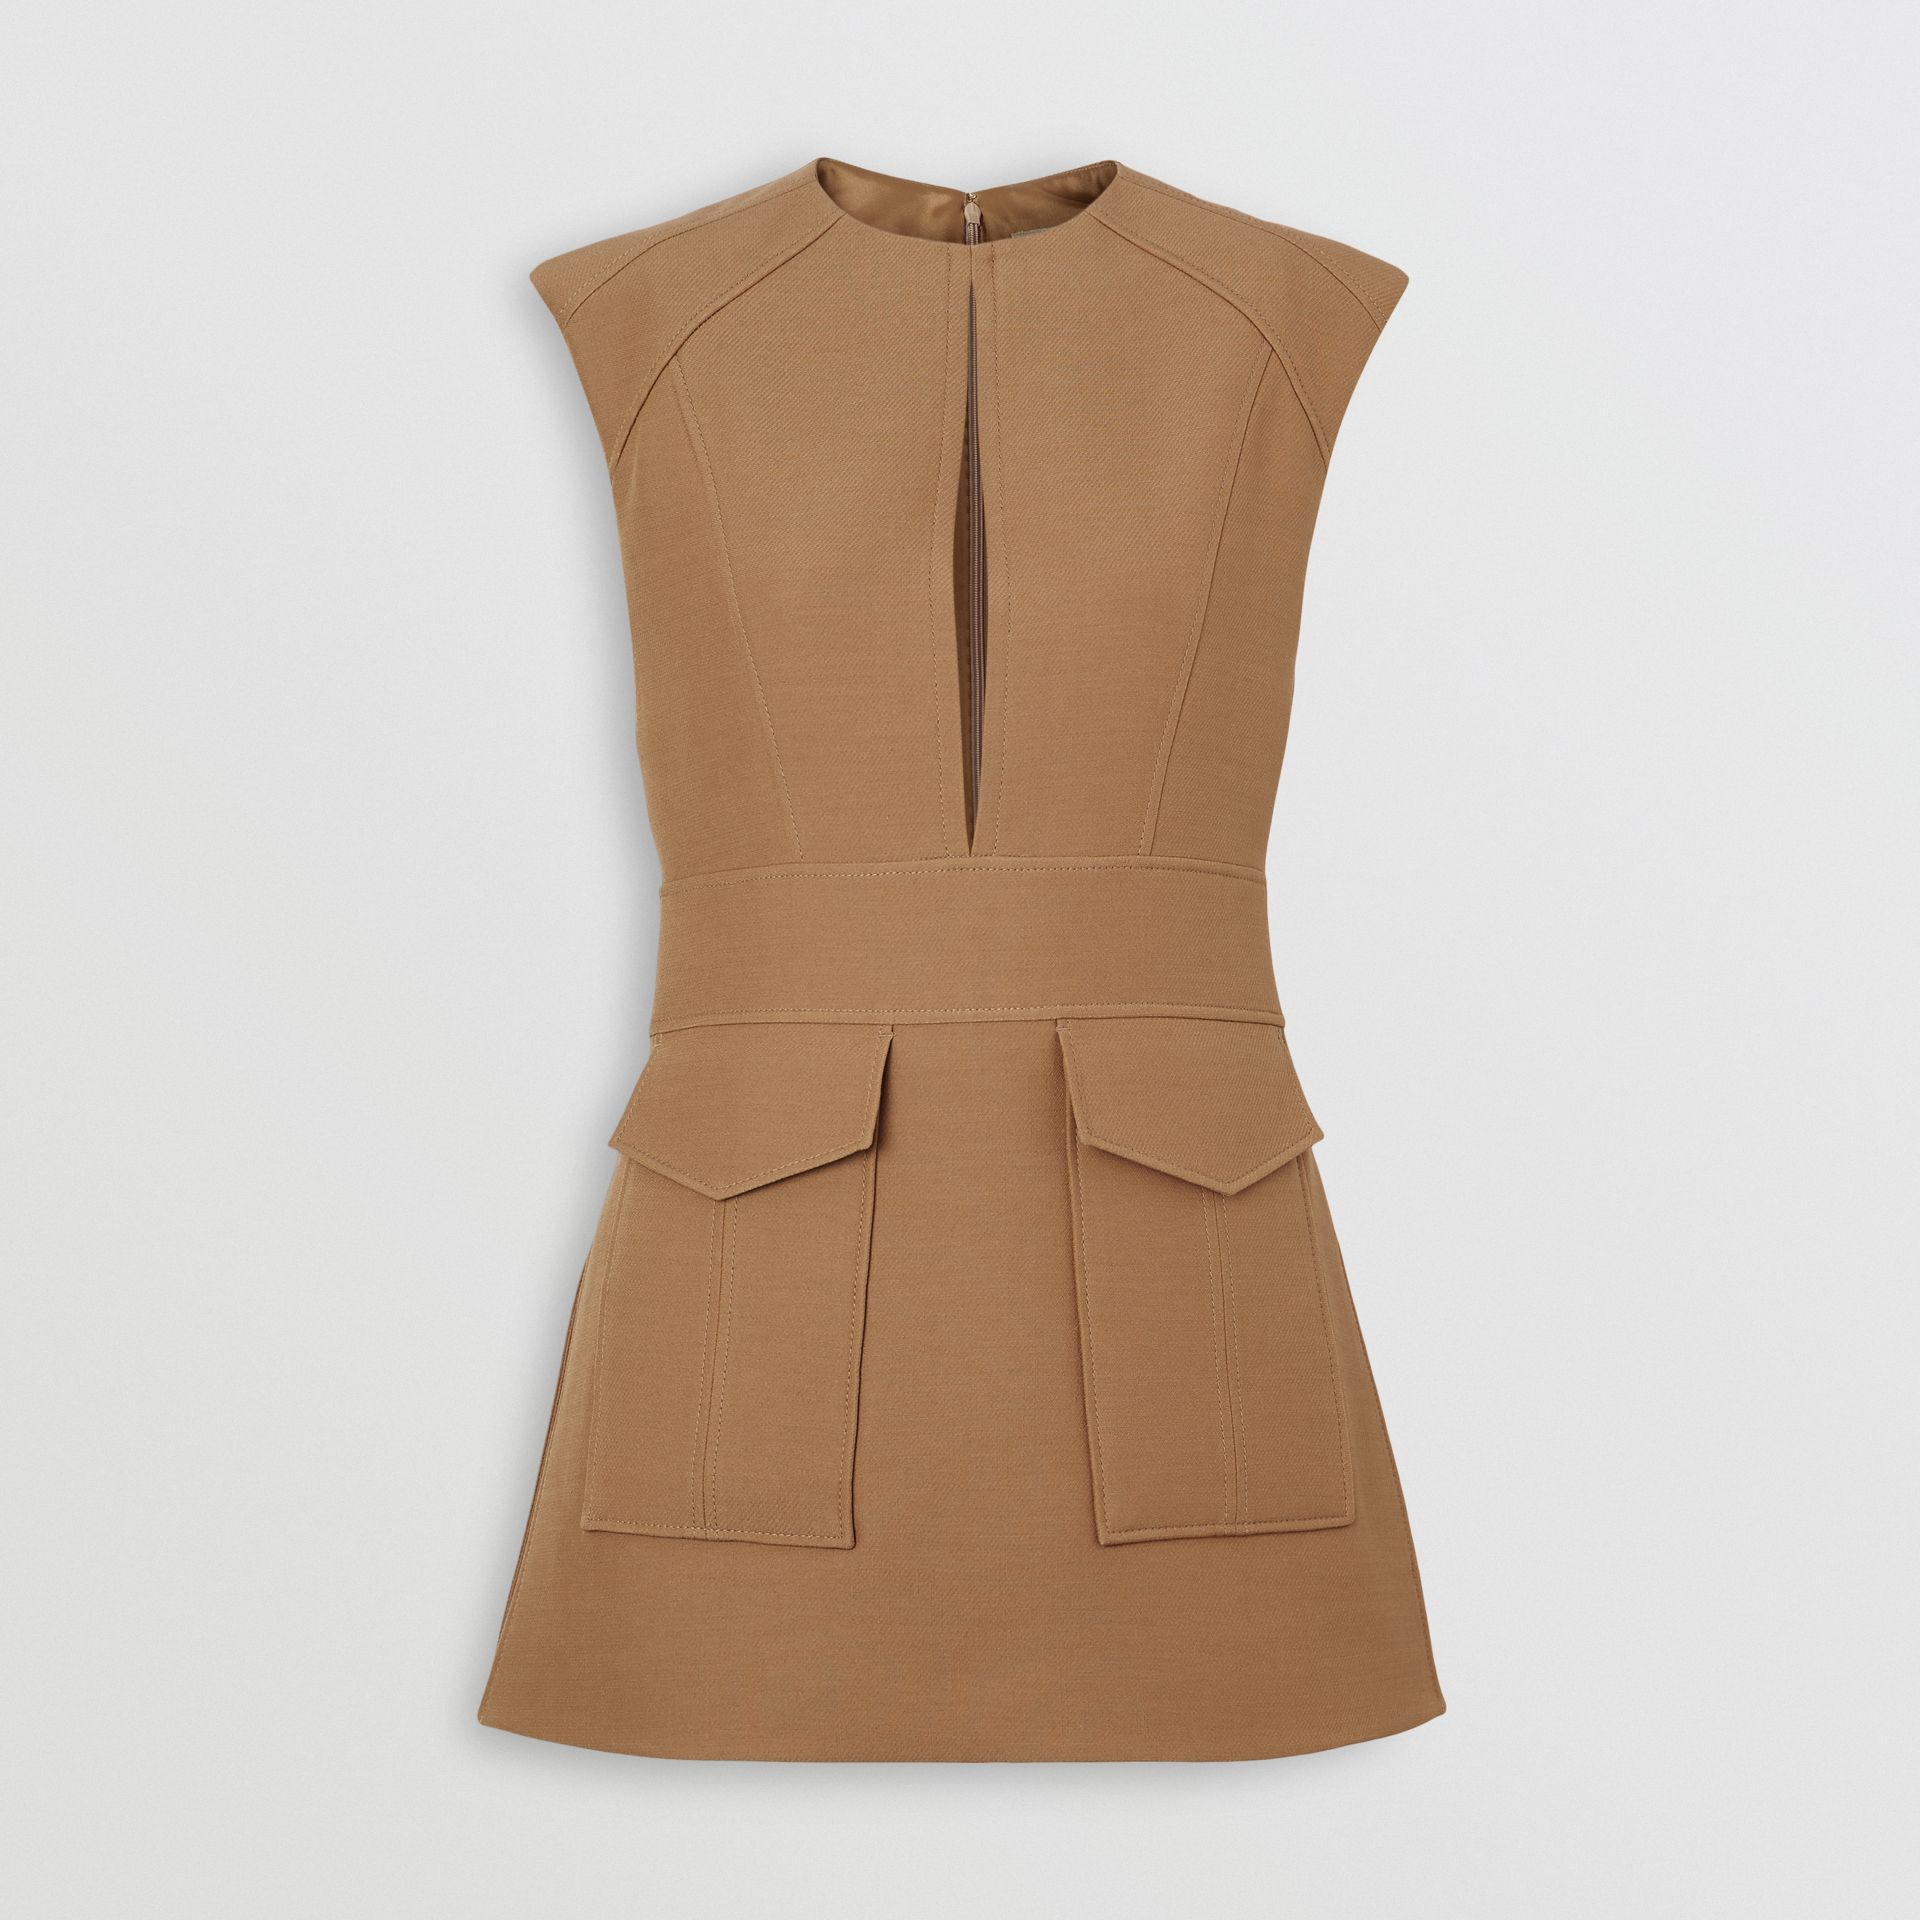 Keyhole Detail Sleeveless Wool Silk Top in Camel - Women | Burberry United Kingdom - gallery image 3